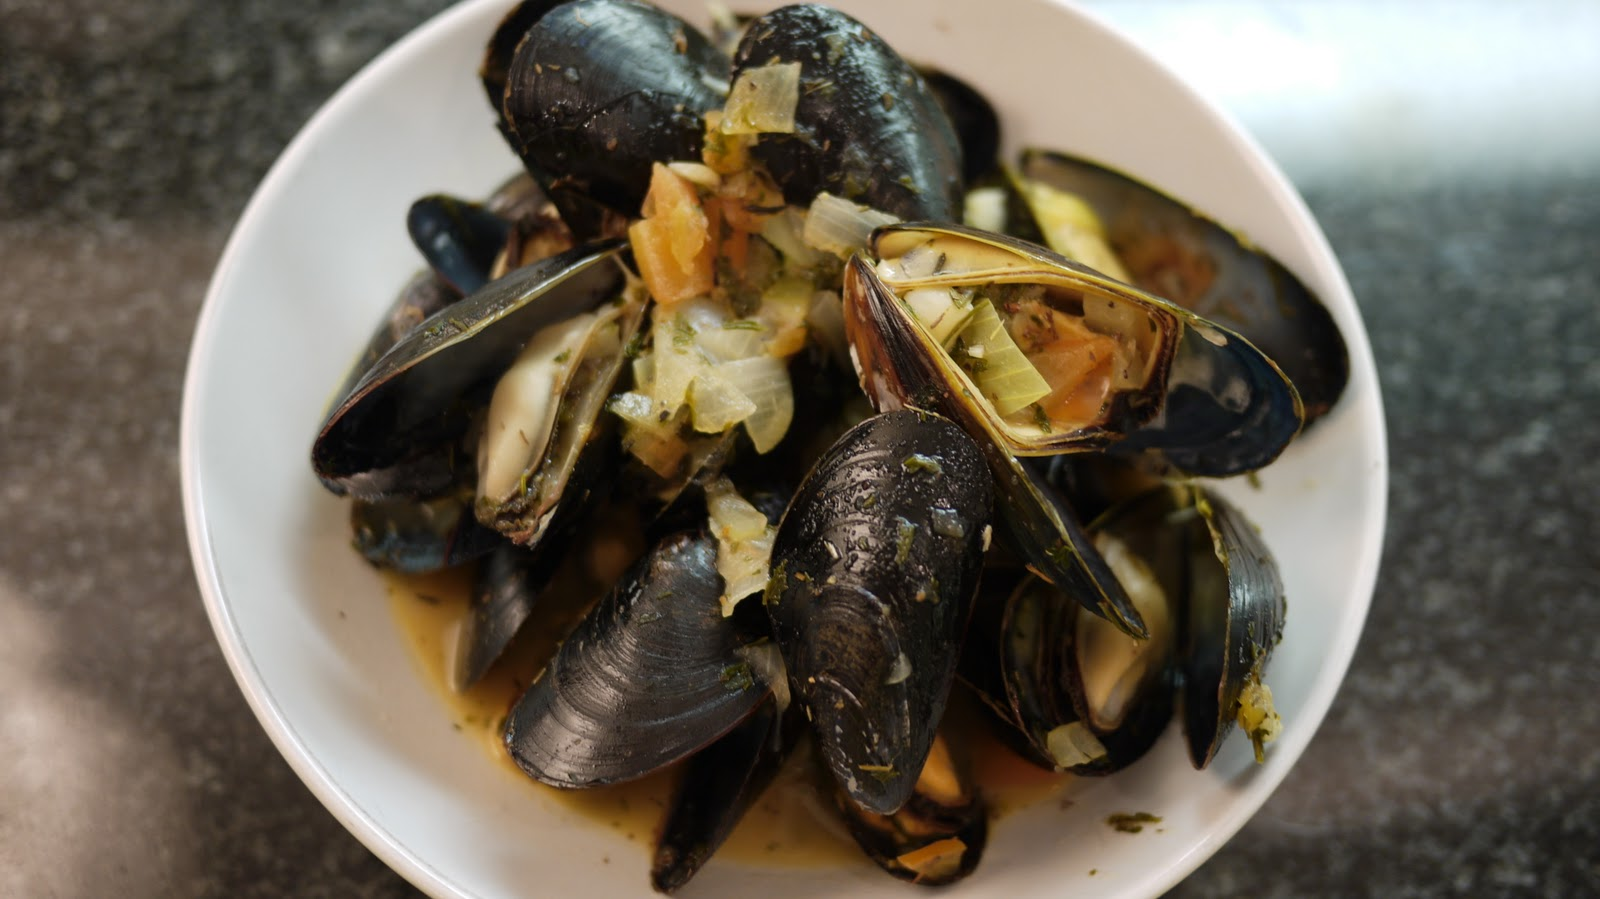 Carol's Kitchen: Steamed Mussels w/ white wine